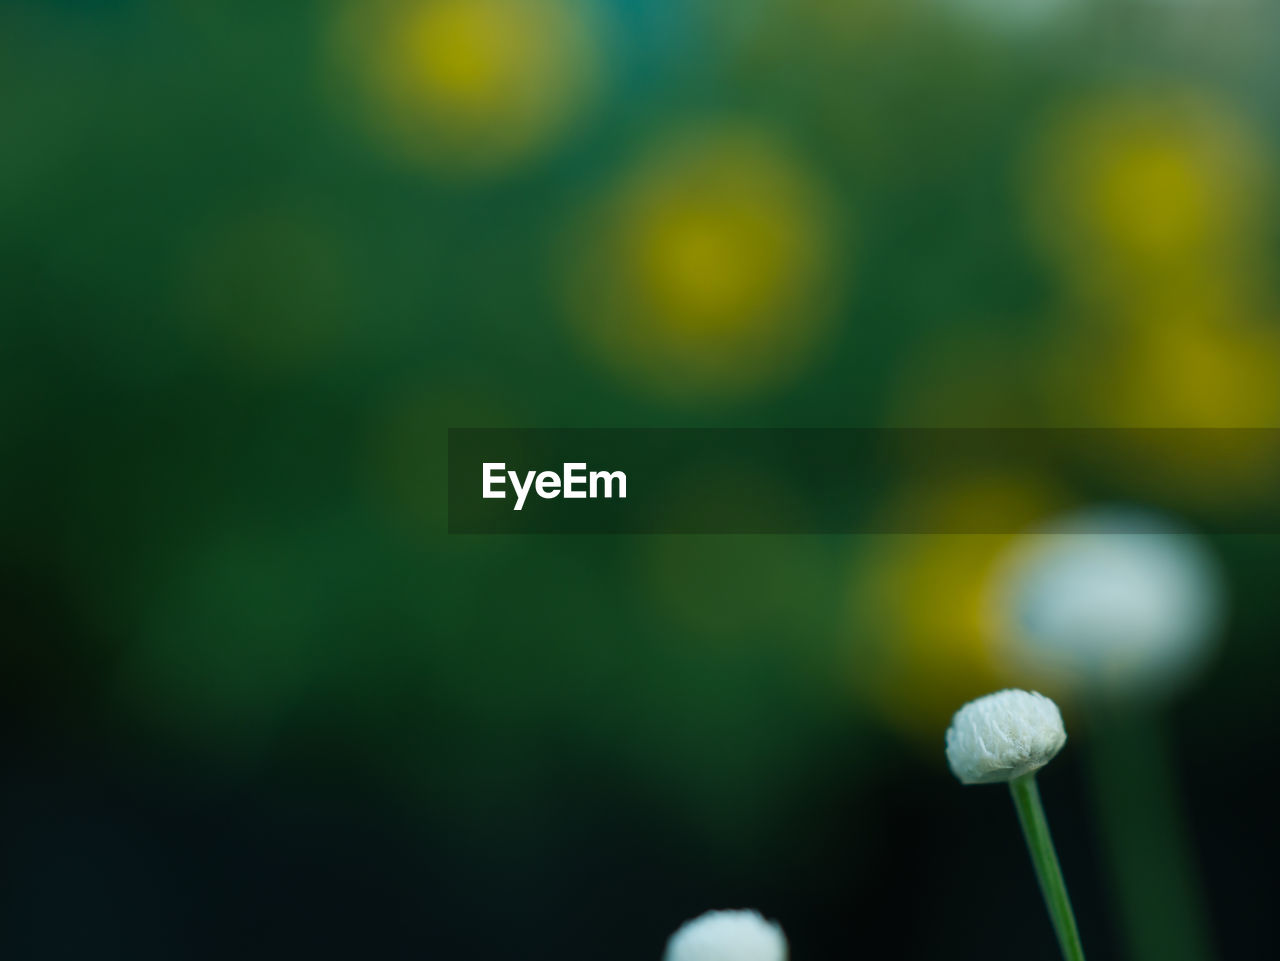 plant, growth, flower, vulnerability, beauty in nature, fragility, flowering plant, freshness, close-up, nature, no people, selective focus, focus on foreground, day, green color, beginnings, plant stem, new life, outdoors, bud, flower head